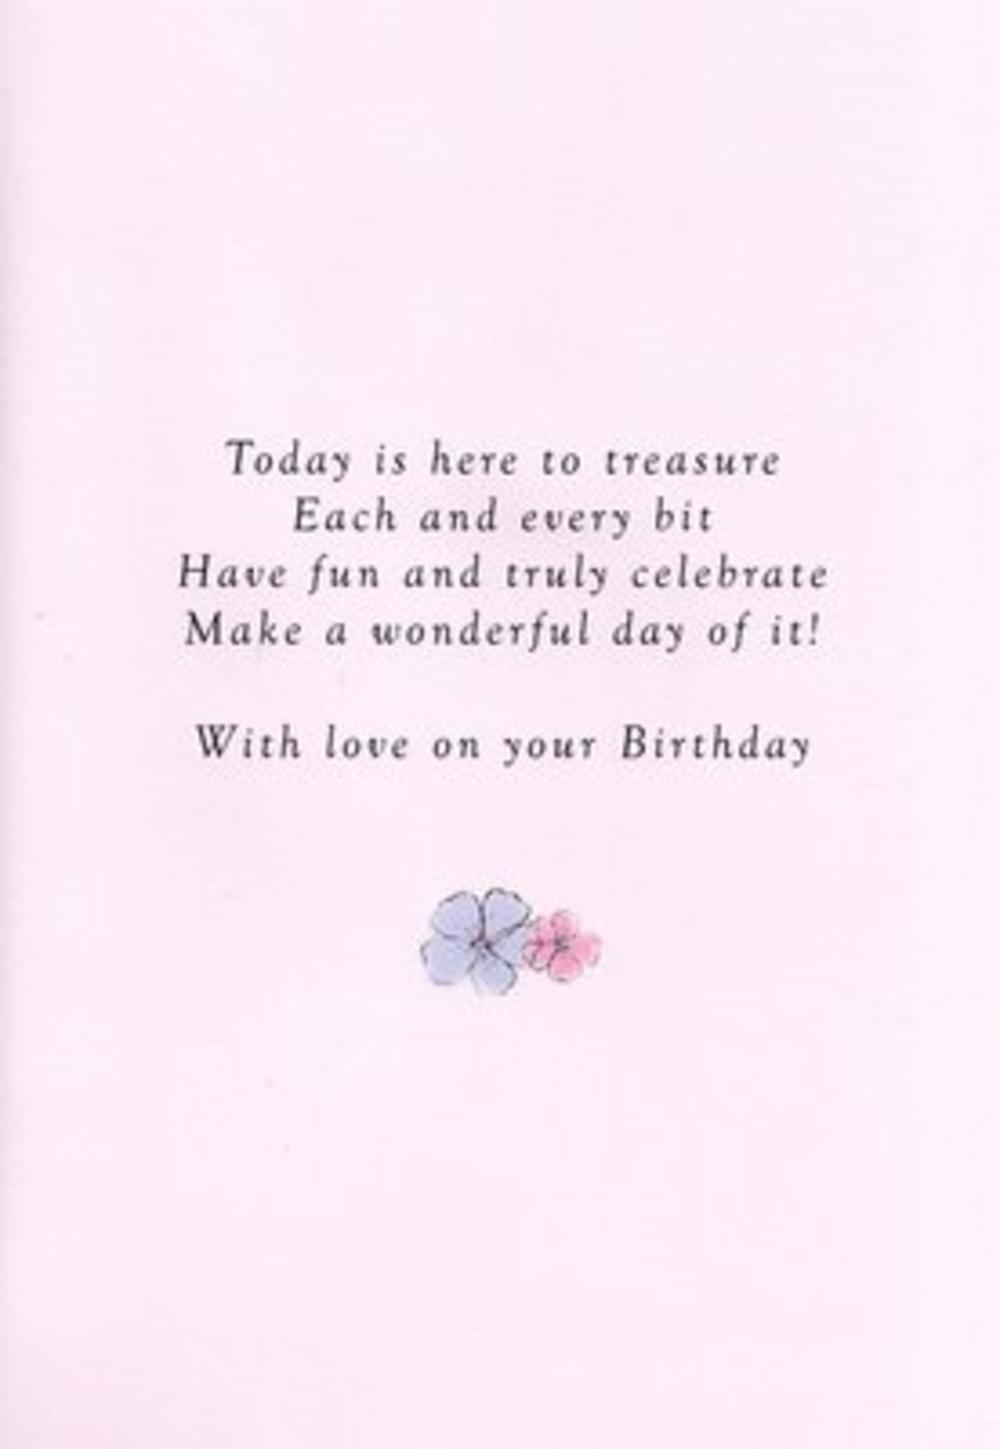 mum birthday poetry in motion card  cards  love kates, Birthday card